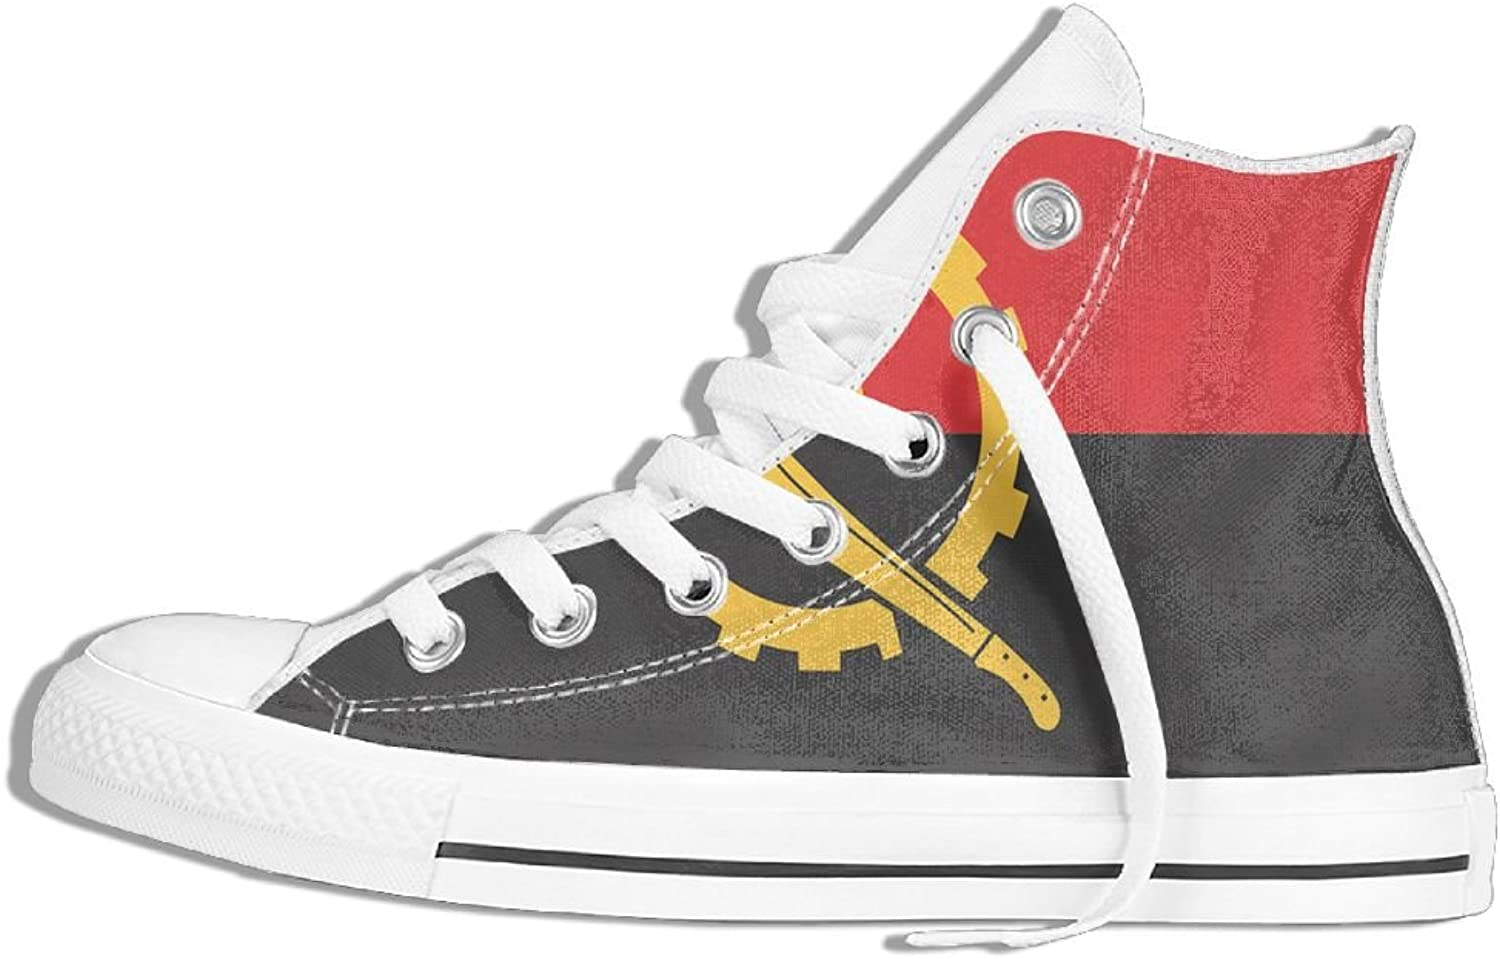 Unisex High Top Sneakers Flag Of Angola Classic Canvas shoes Breathable Sneaker